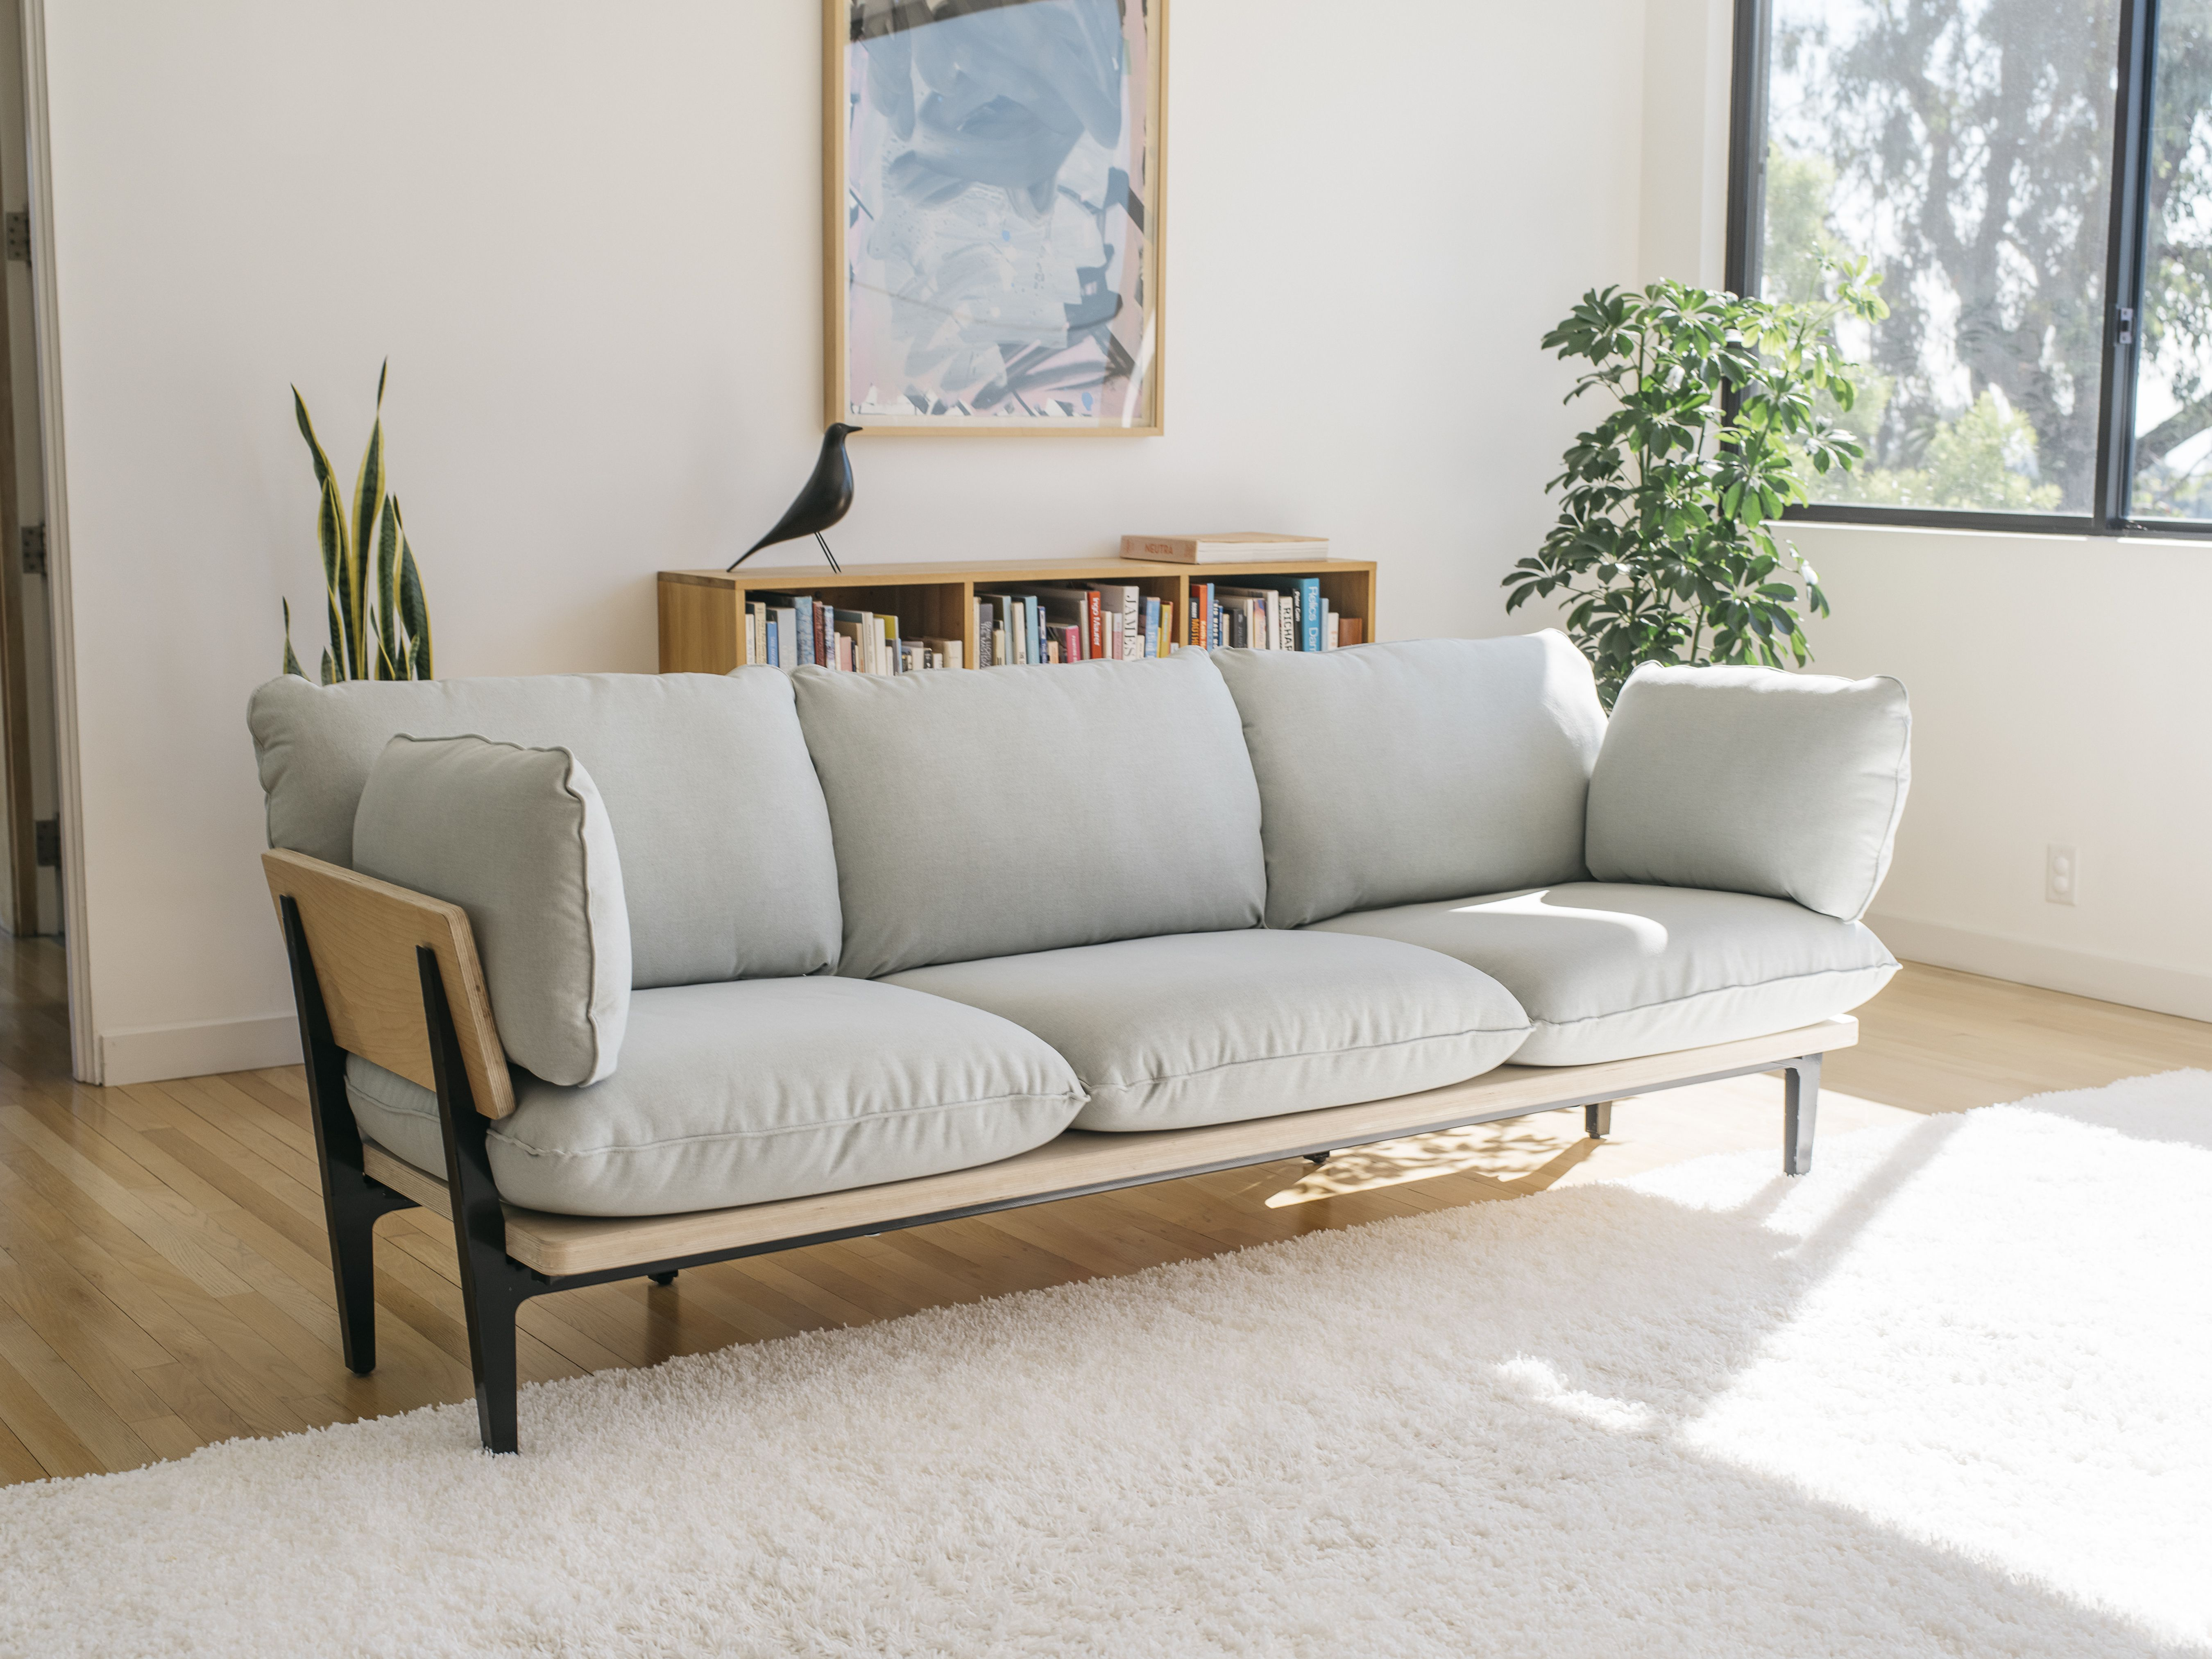 Made in america furniture retailer floyd adds a sofa to its lineup hunker